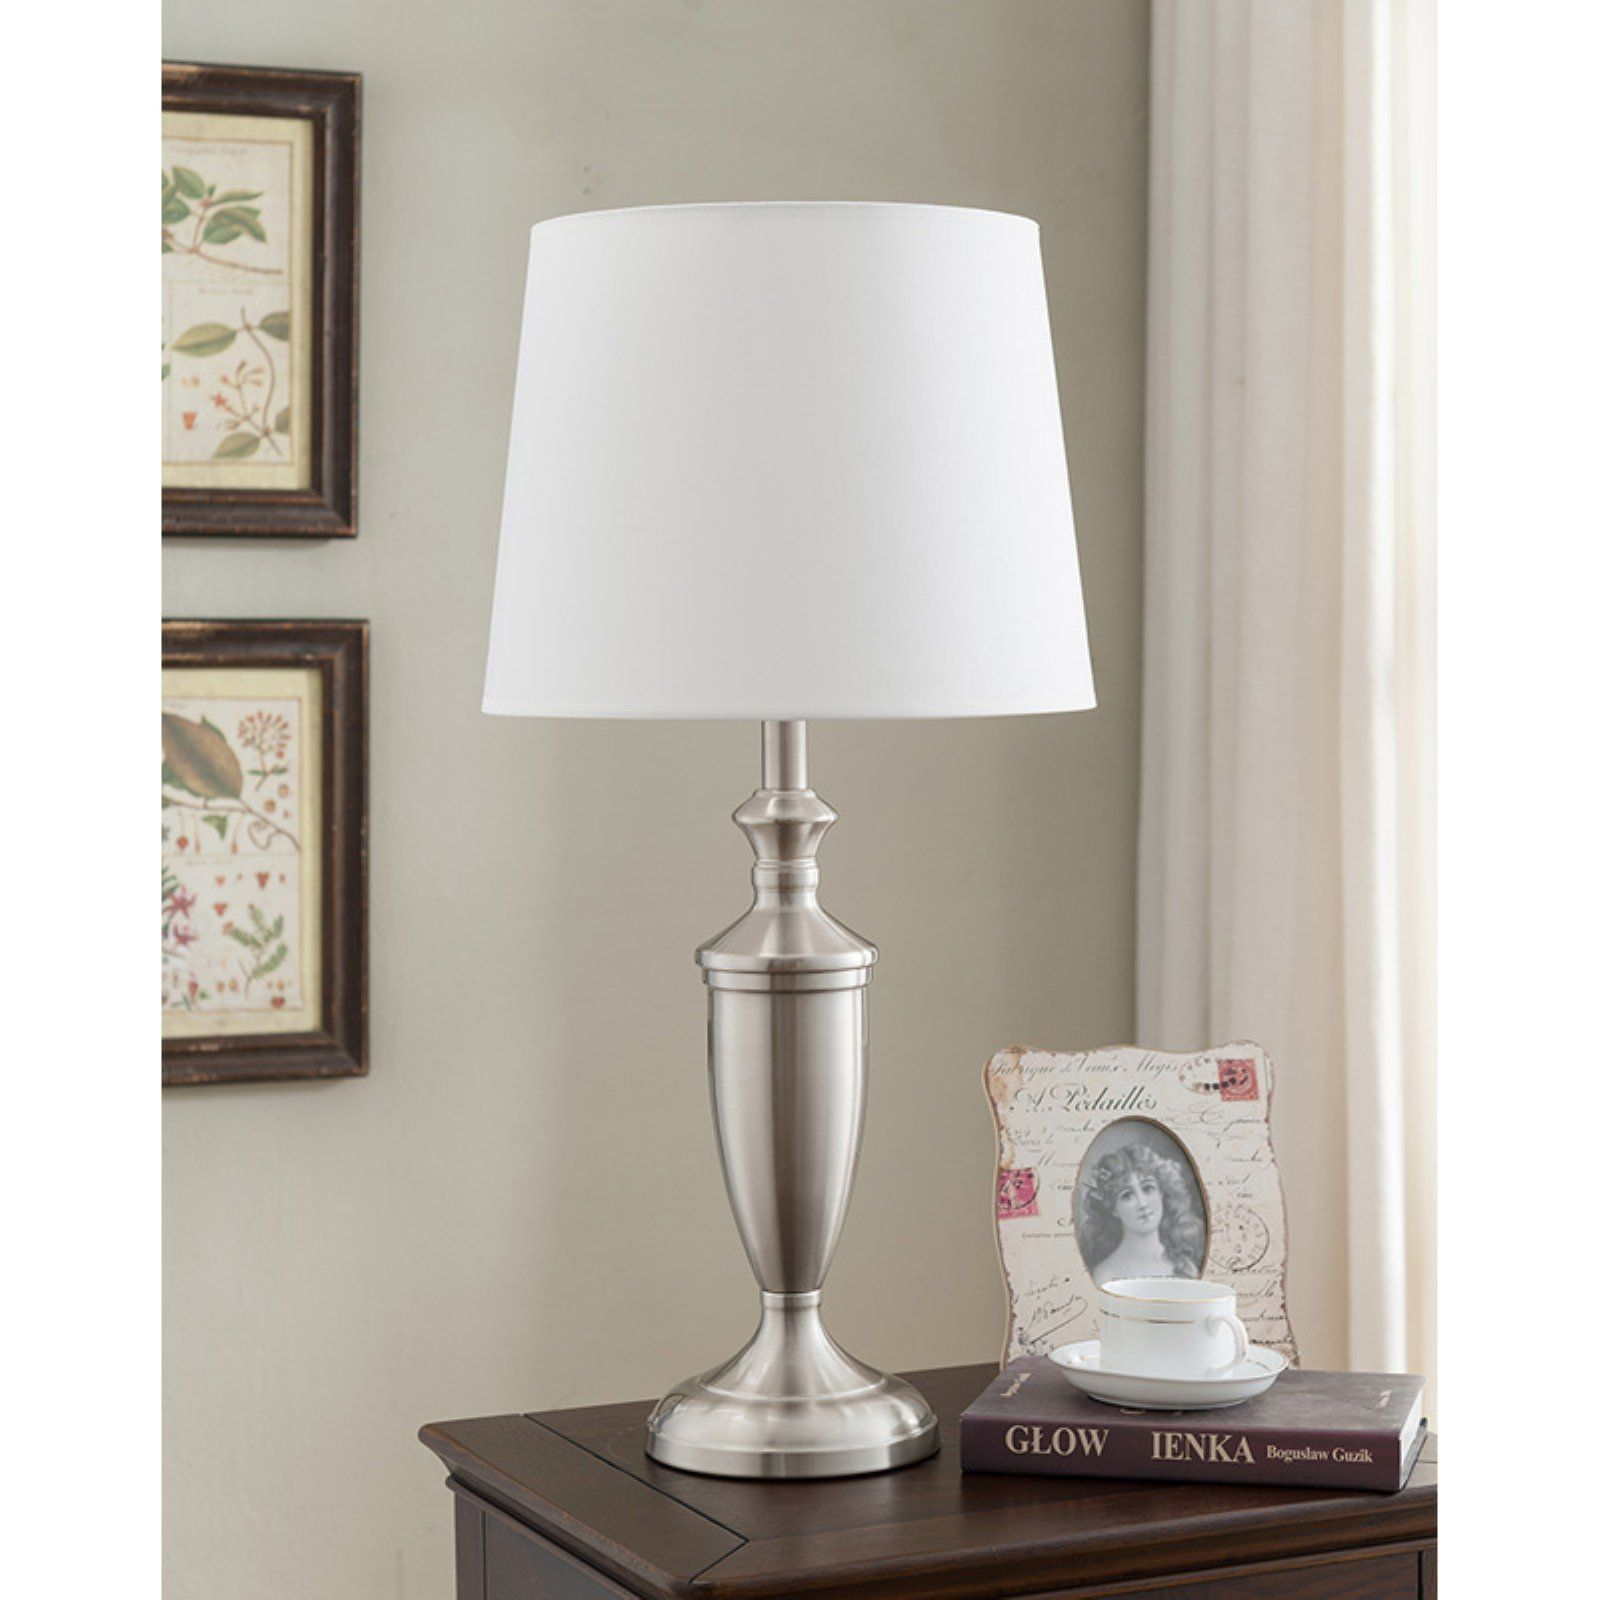 K&B Furniture L228 Brushed Nickel and White Table Lamp